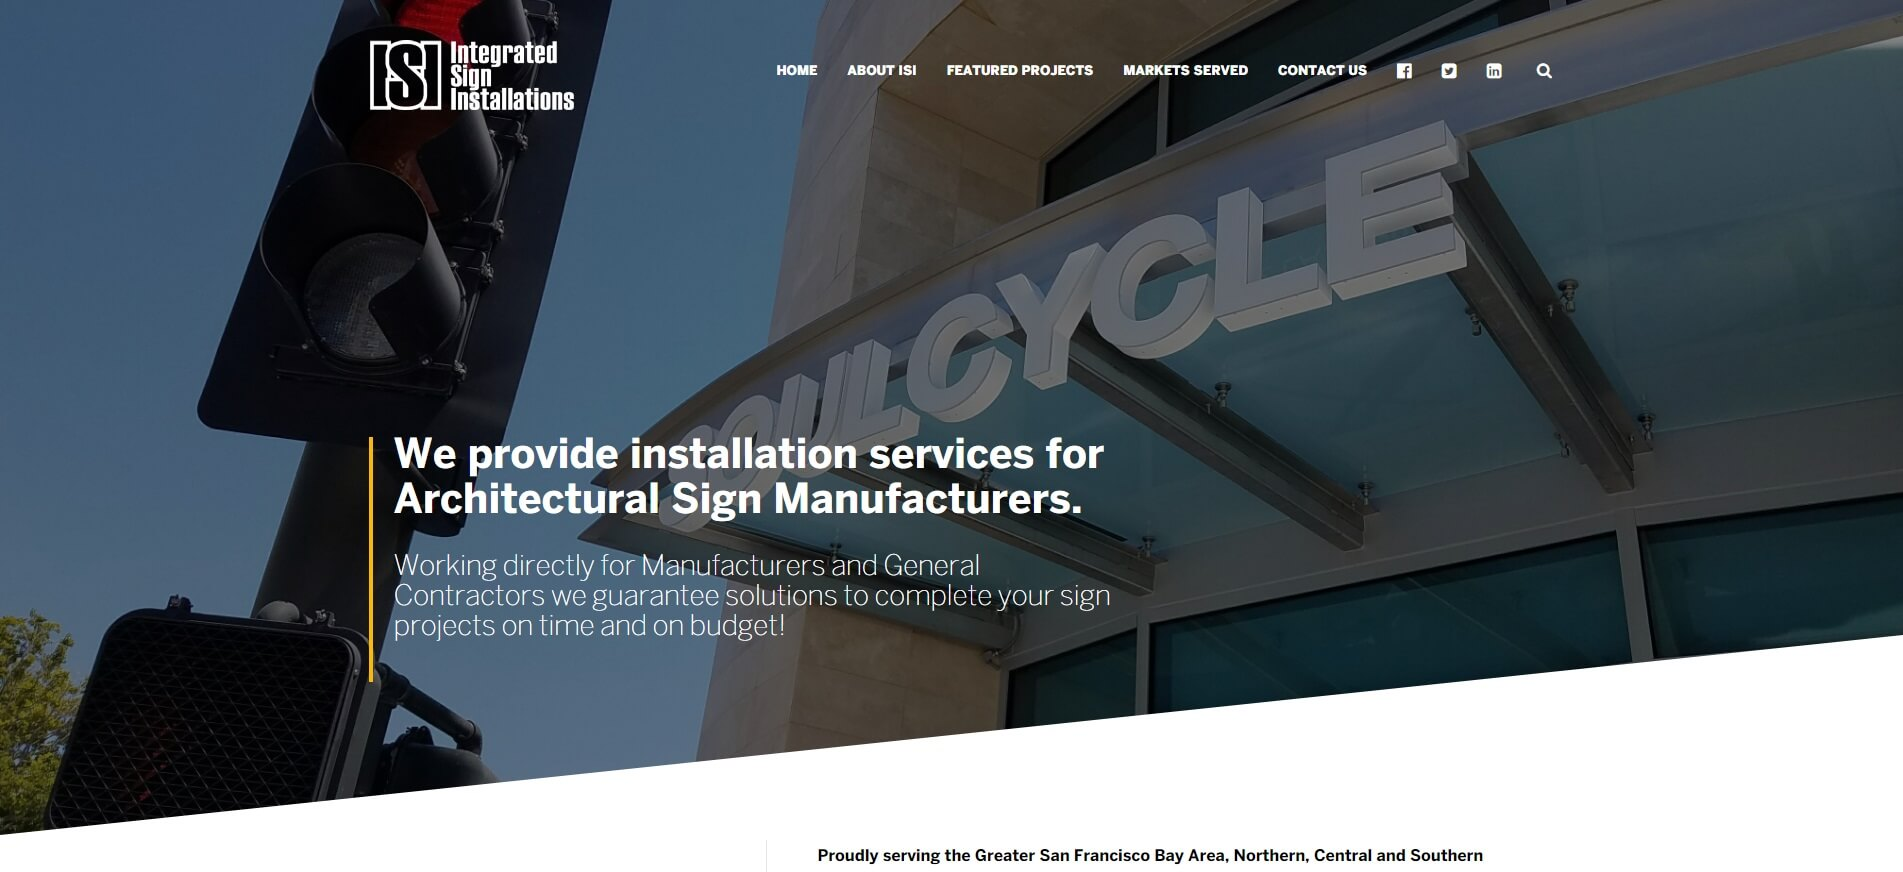 Nett-Solutions-Case-Study-Integrated-Sign-Installations